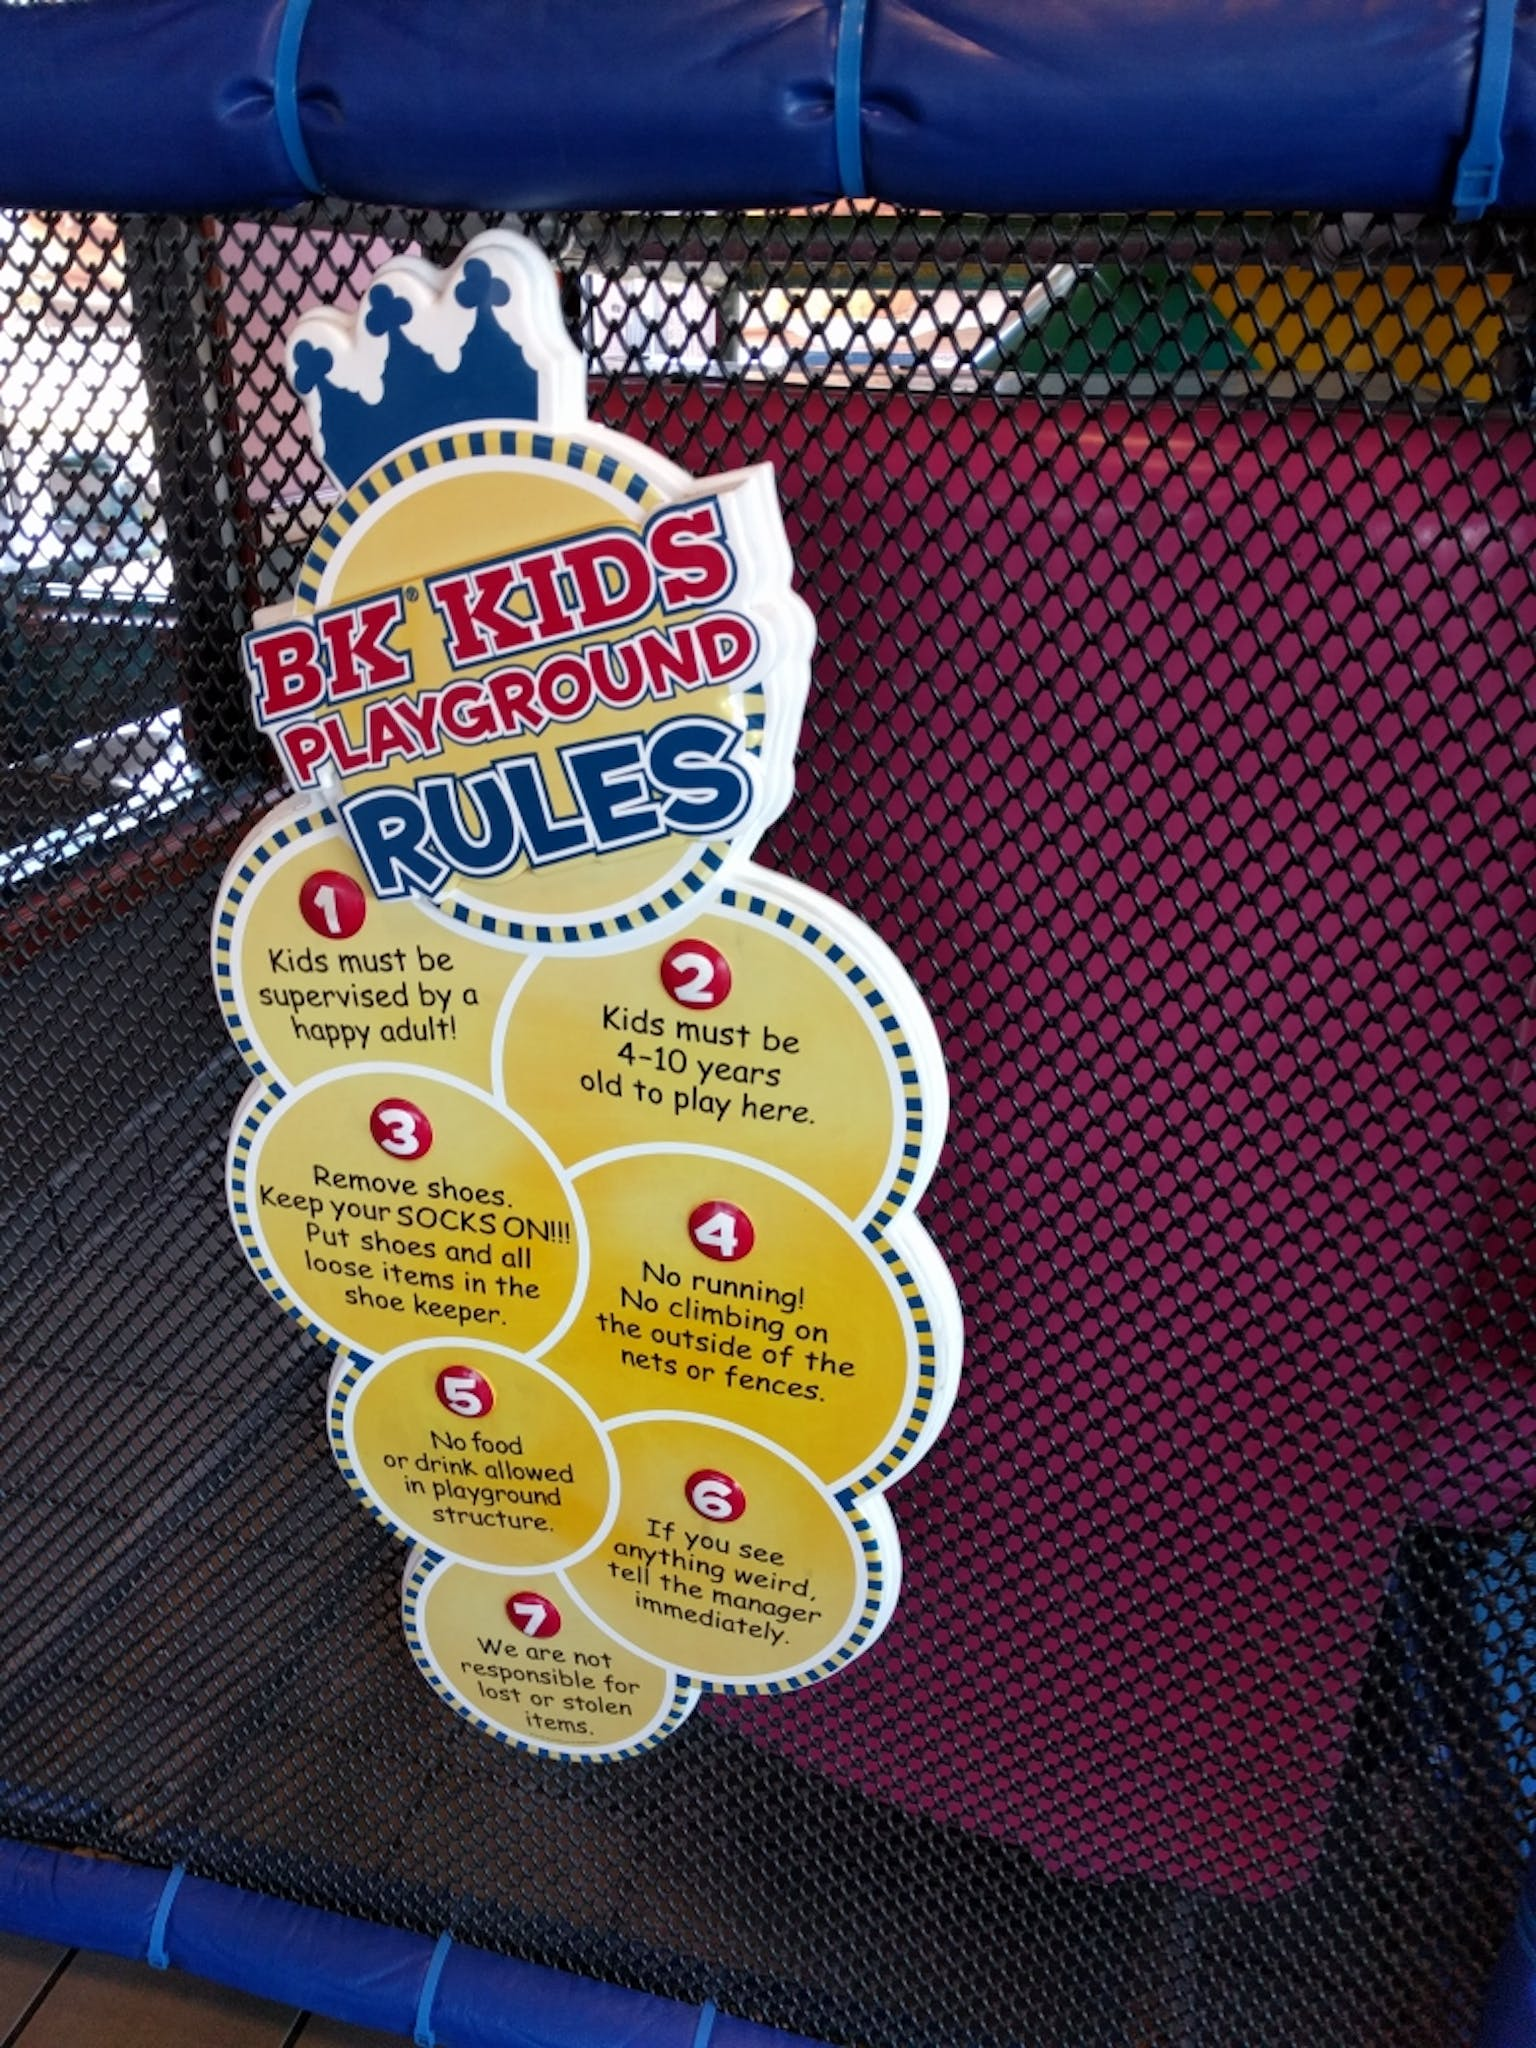 This burger king has an indoor playground, but they also